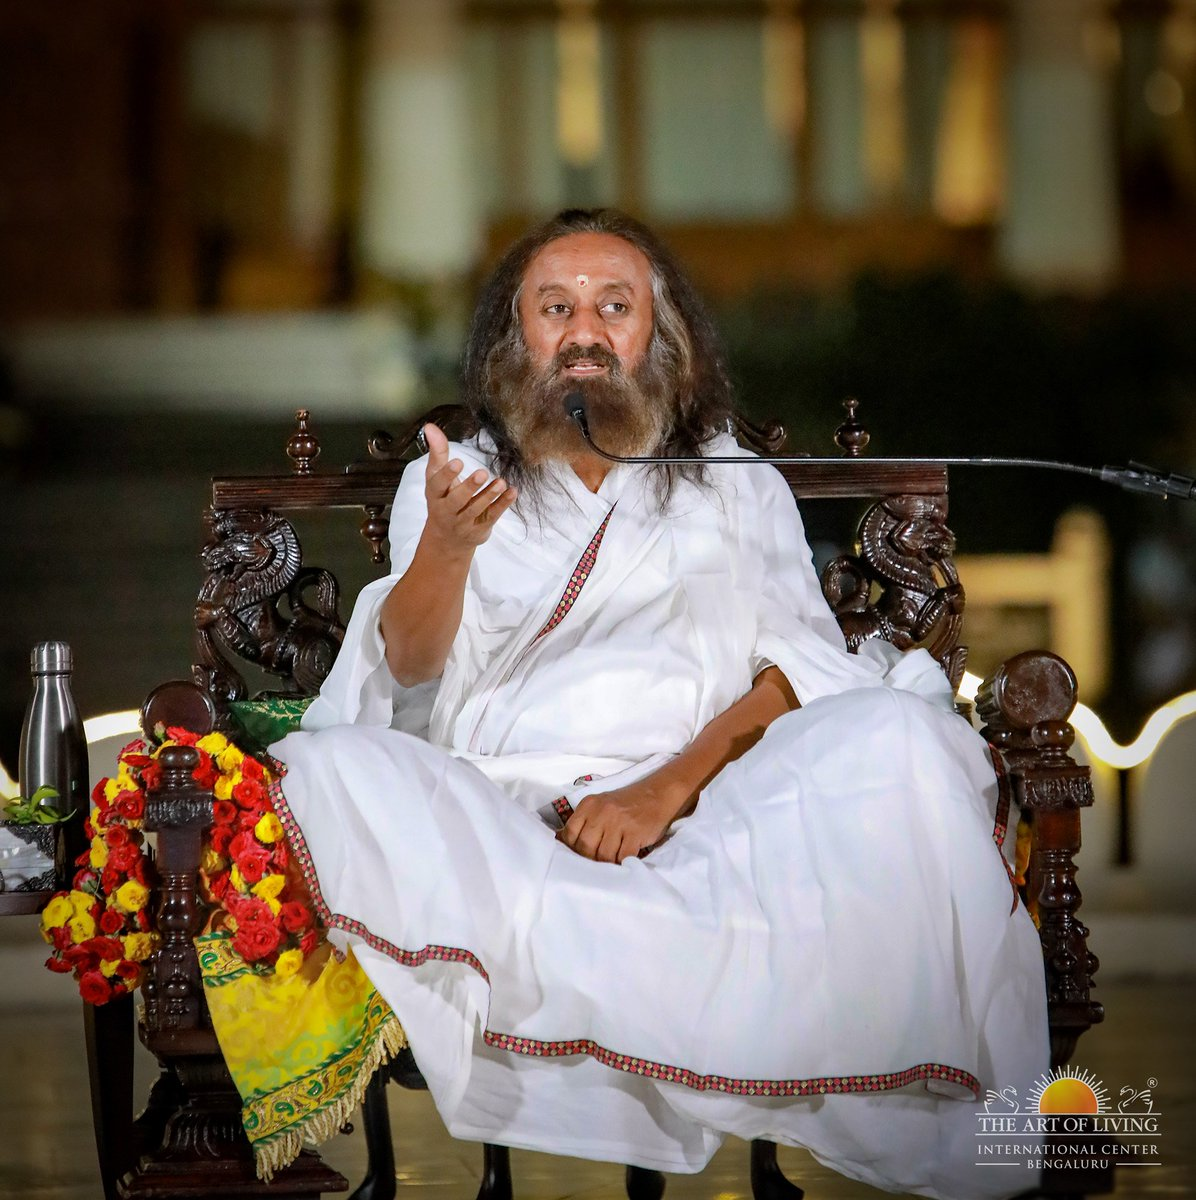 A journalist with glasses is no journalist. They should have clarity in vision and honesty in their approach. A role of a journalist is to inspire people and bring positivity in the society. - Gurudev @SriSri in Satsang this evening at the Center